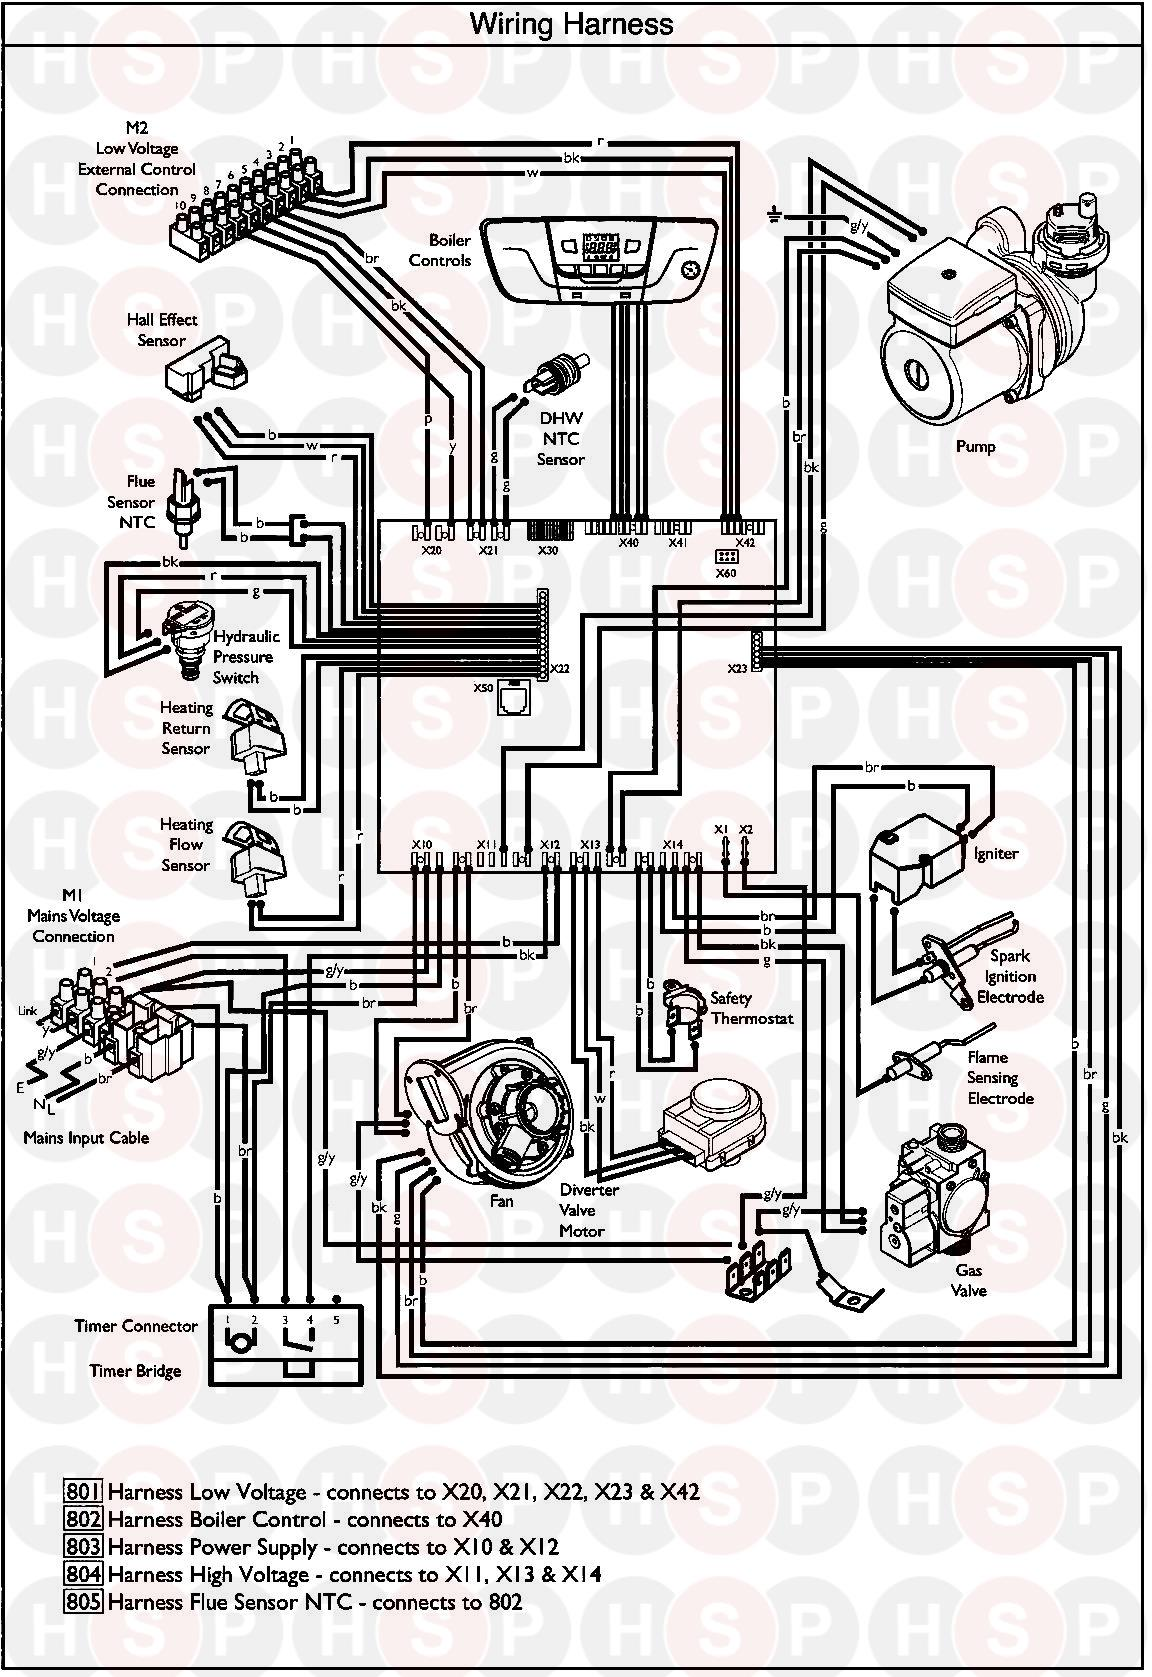 Baxi combi boiler wiring diagram wiring solutions baxi ecoblue advance combi 33 wiring diagram heating asfbconference2016 Choice Image